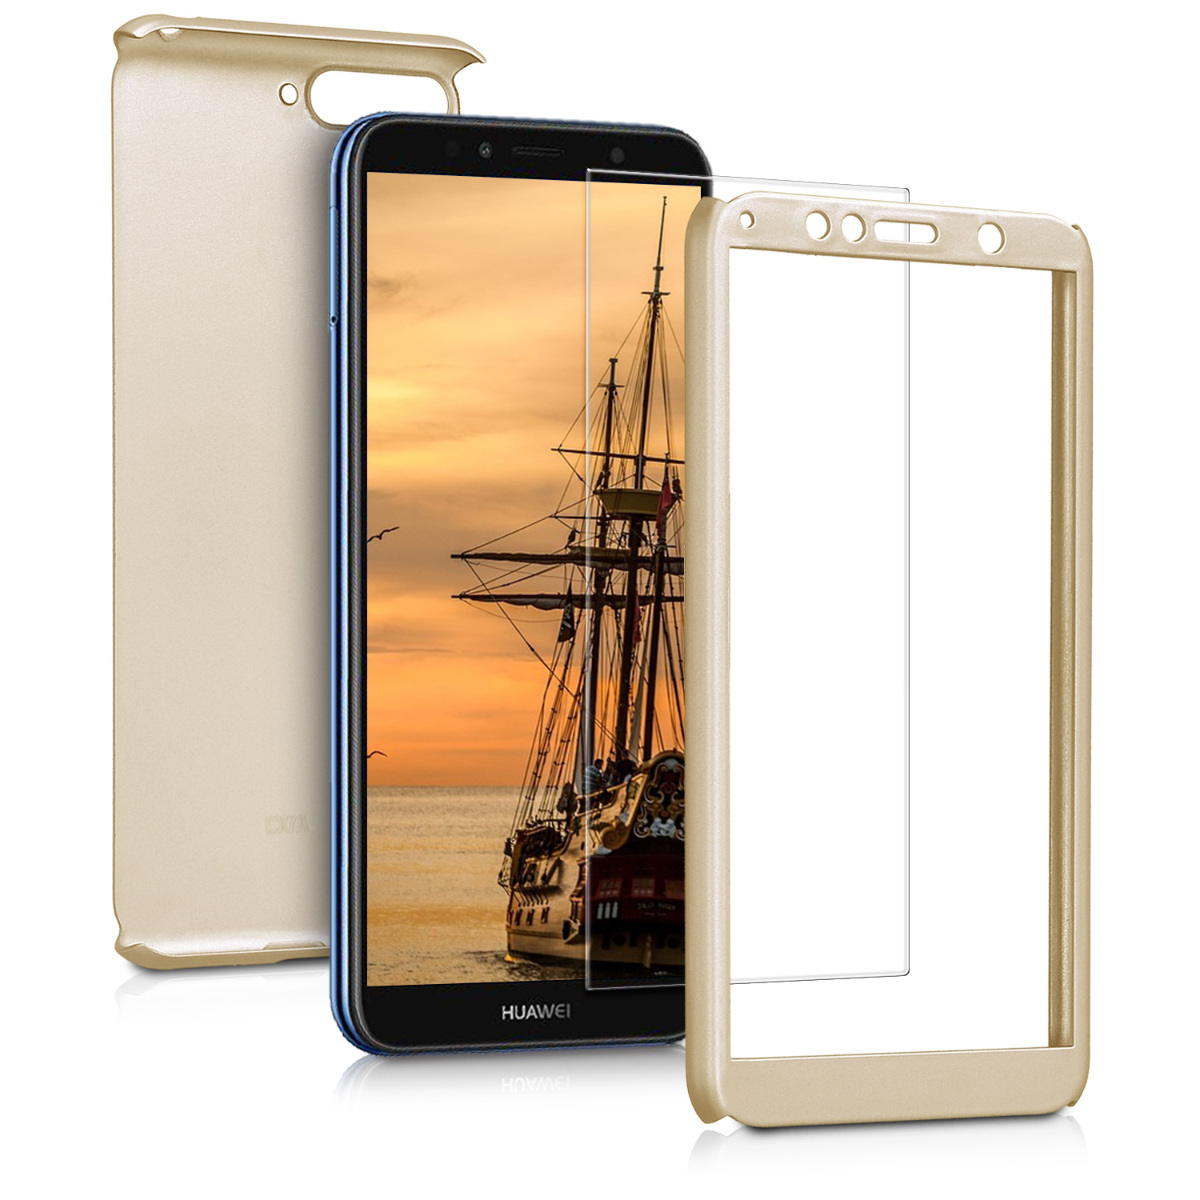 KW Θήκη Full Body with Screen Protector - Huawei Y6 (2018) - Metallic Gold (45639.66)